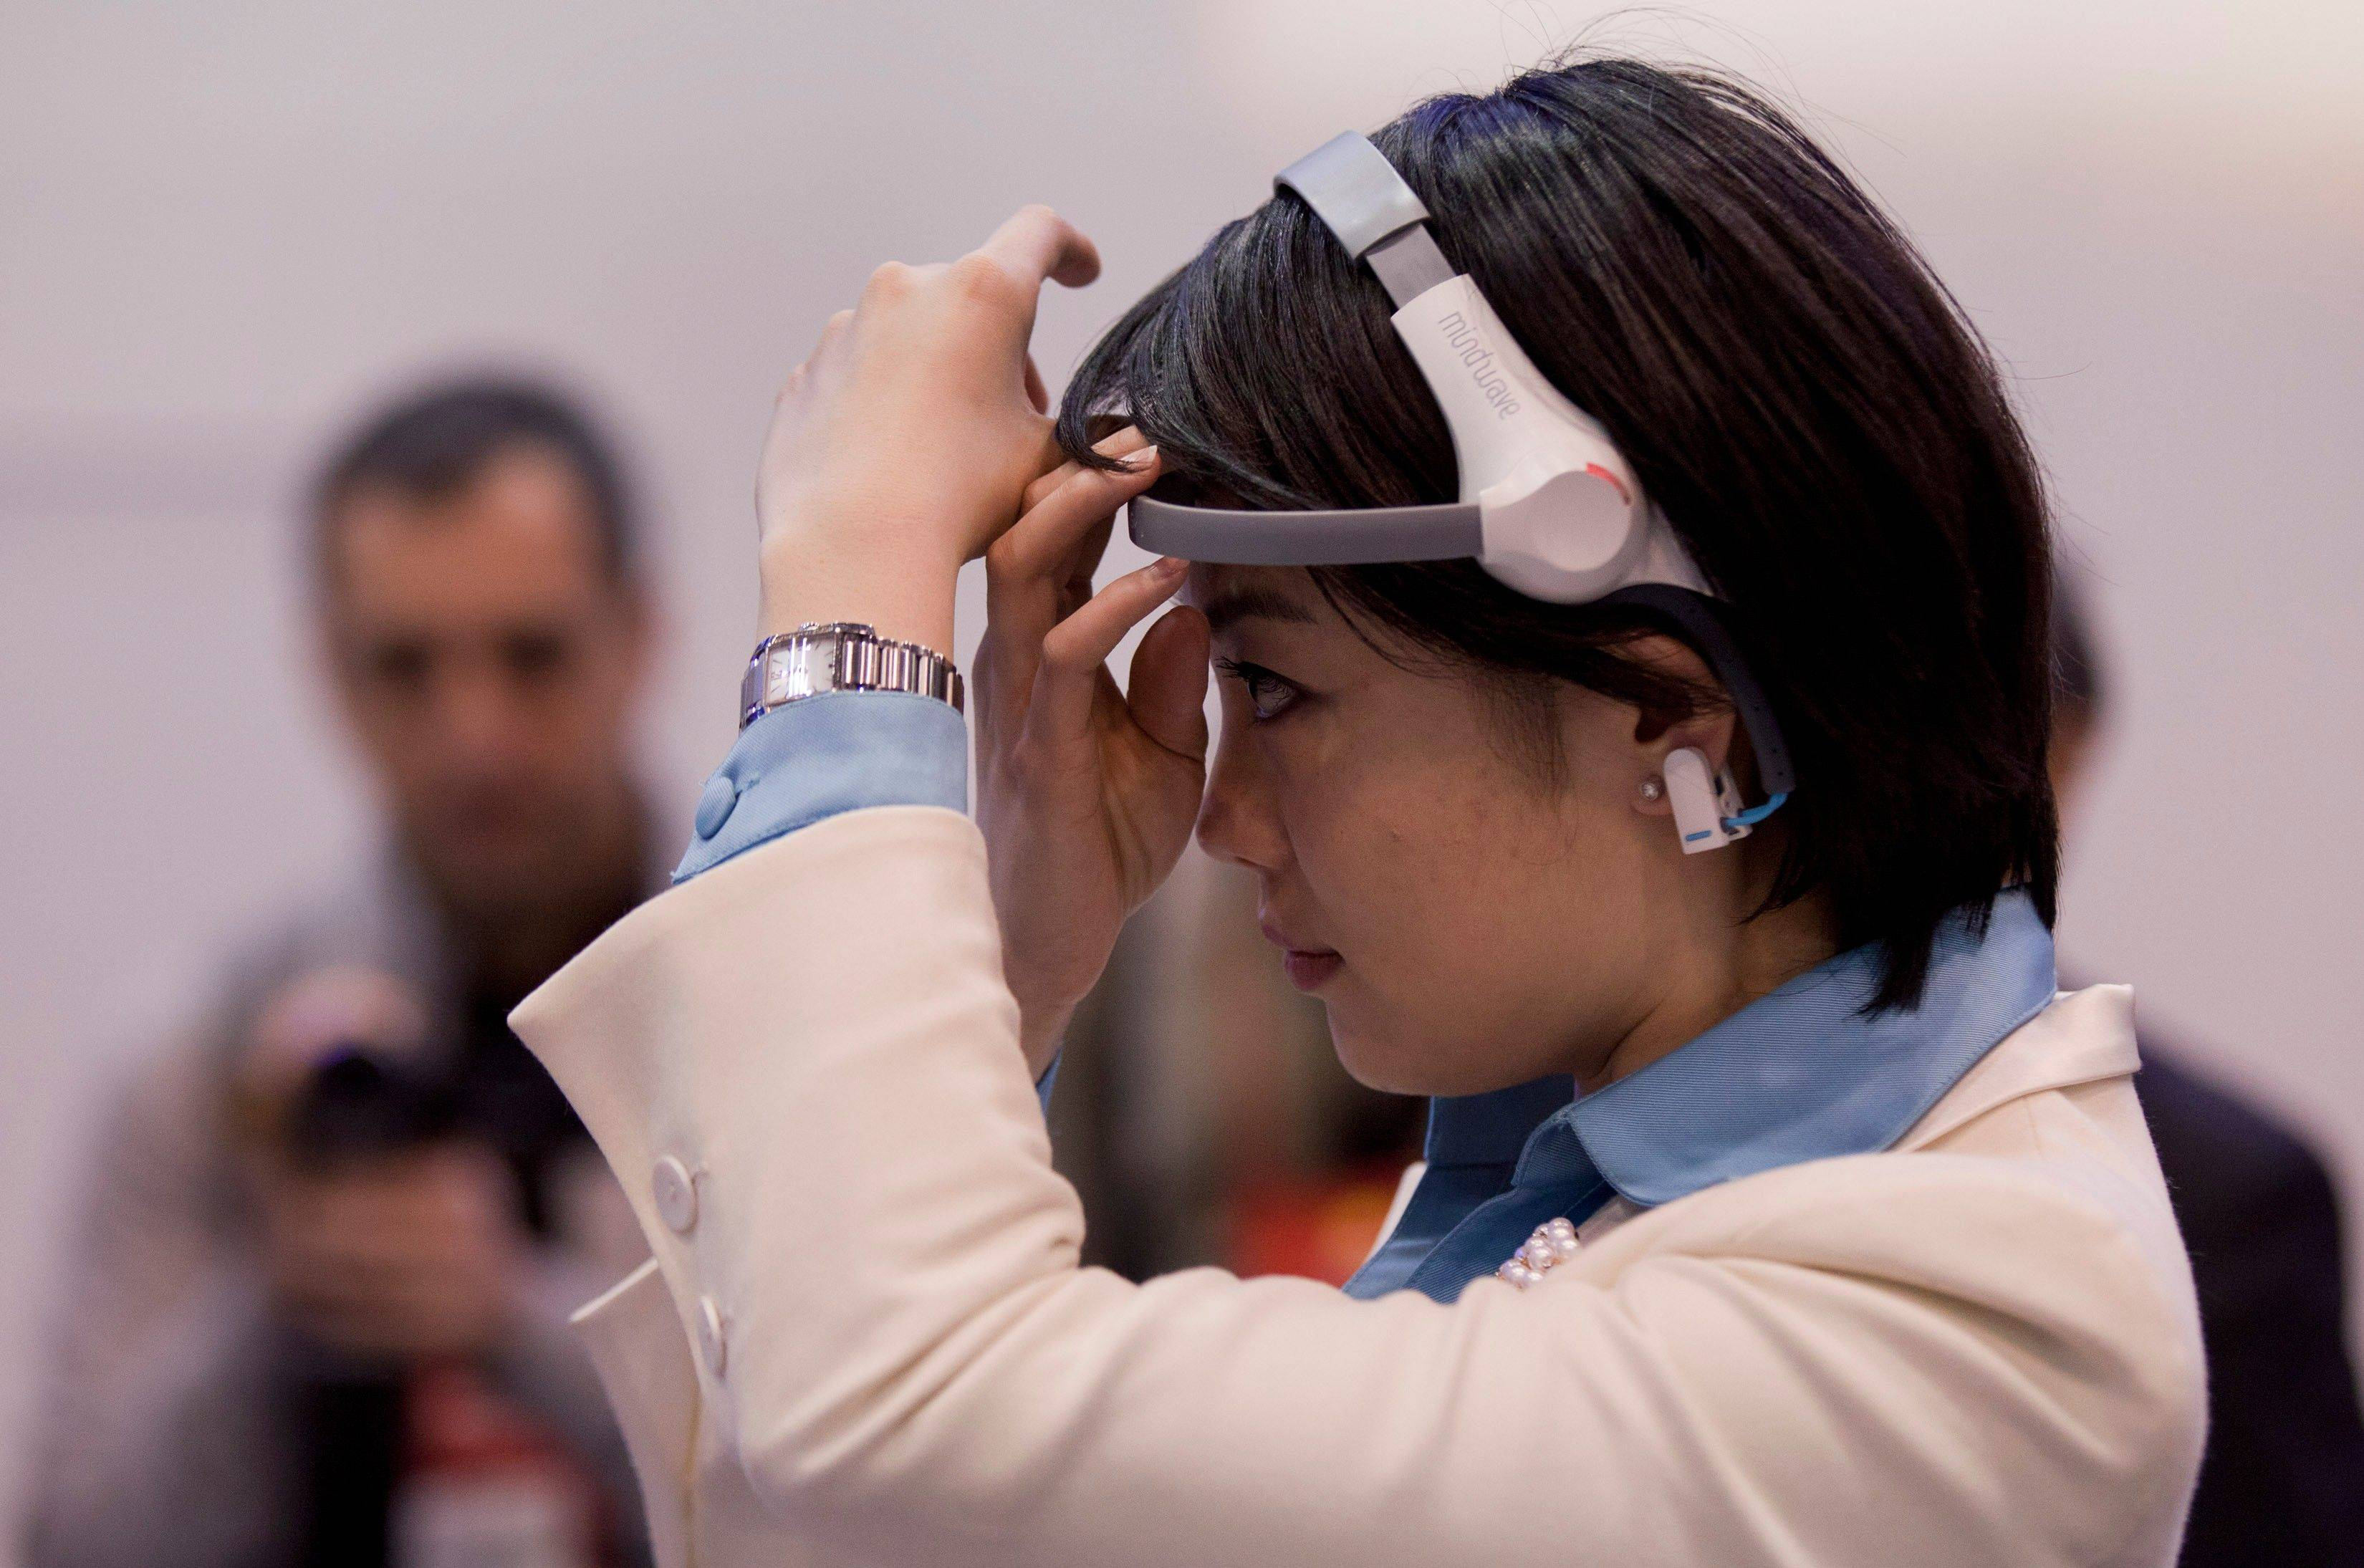 The Haier Brain Wave TV headset at the 2012 International Consumer Electronics show in Las Vegas. The headset, which measures brain waves with one sensor on the wearer�s forehead and another clipped onto an earlobe, can sense if the user wants something on a TV set to go up or down. Haier is selling the set in China, but has no plans to bring it to market in the U.S.